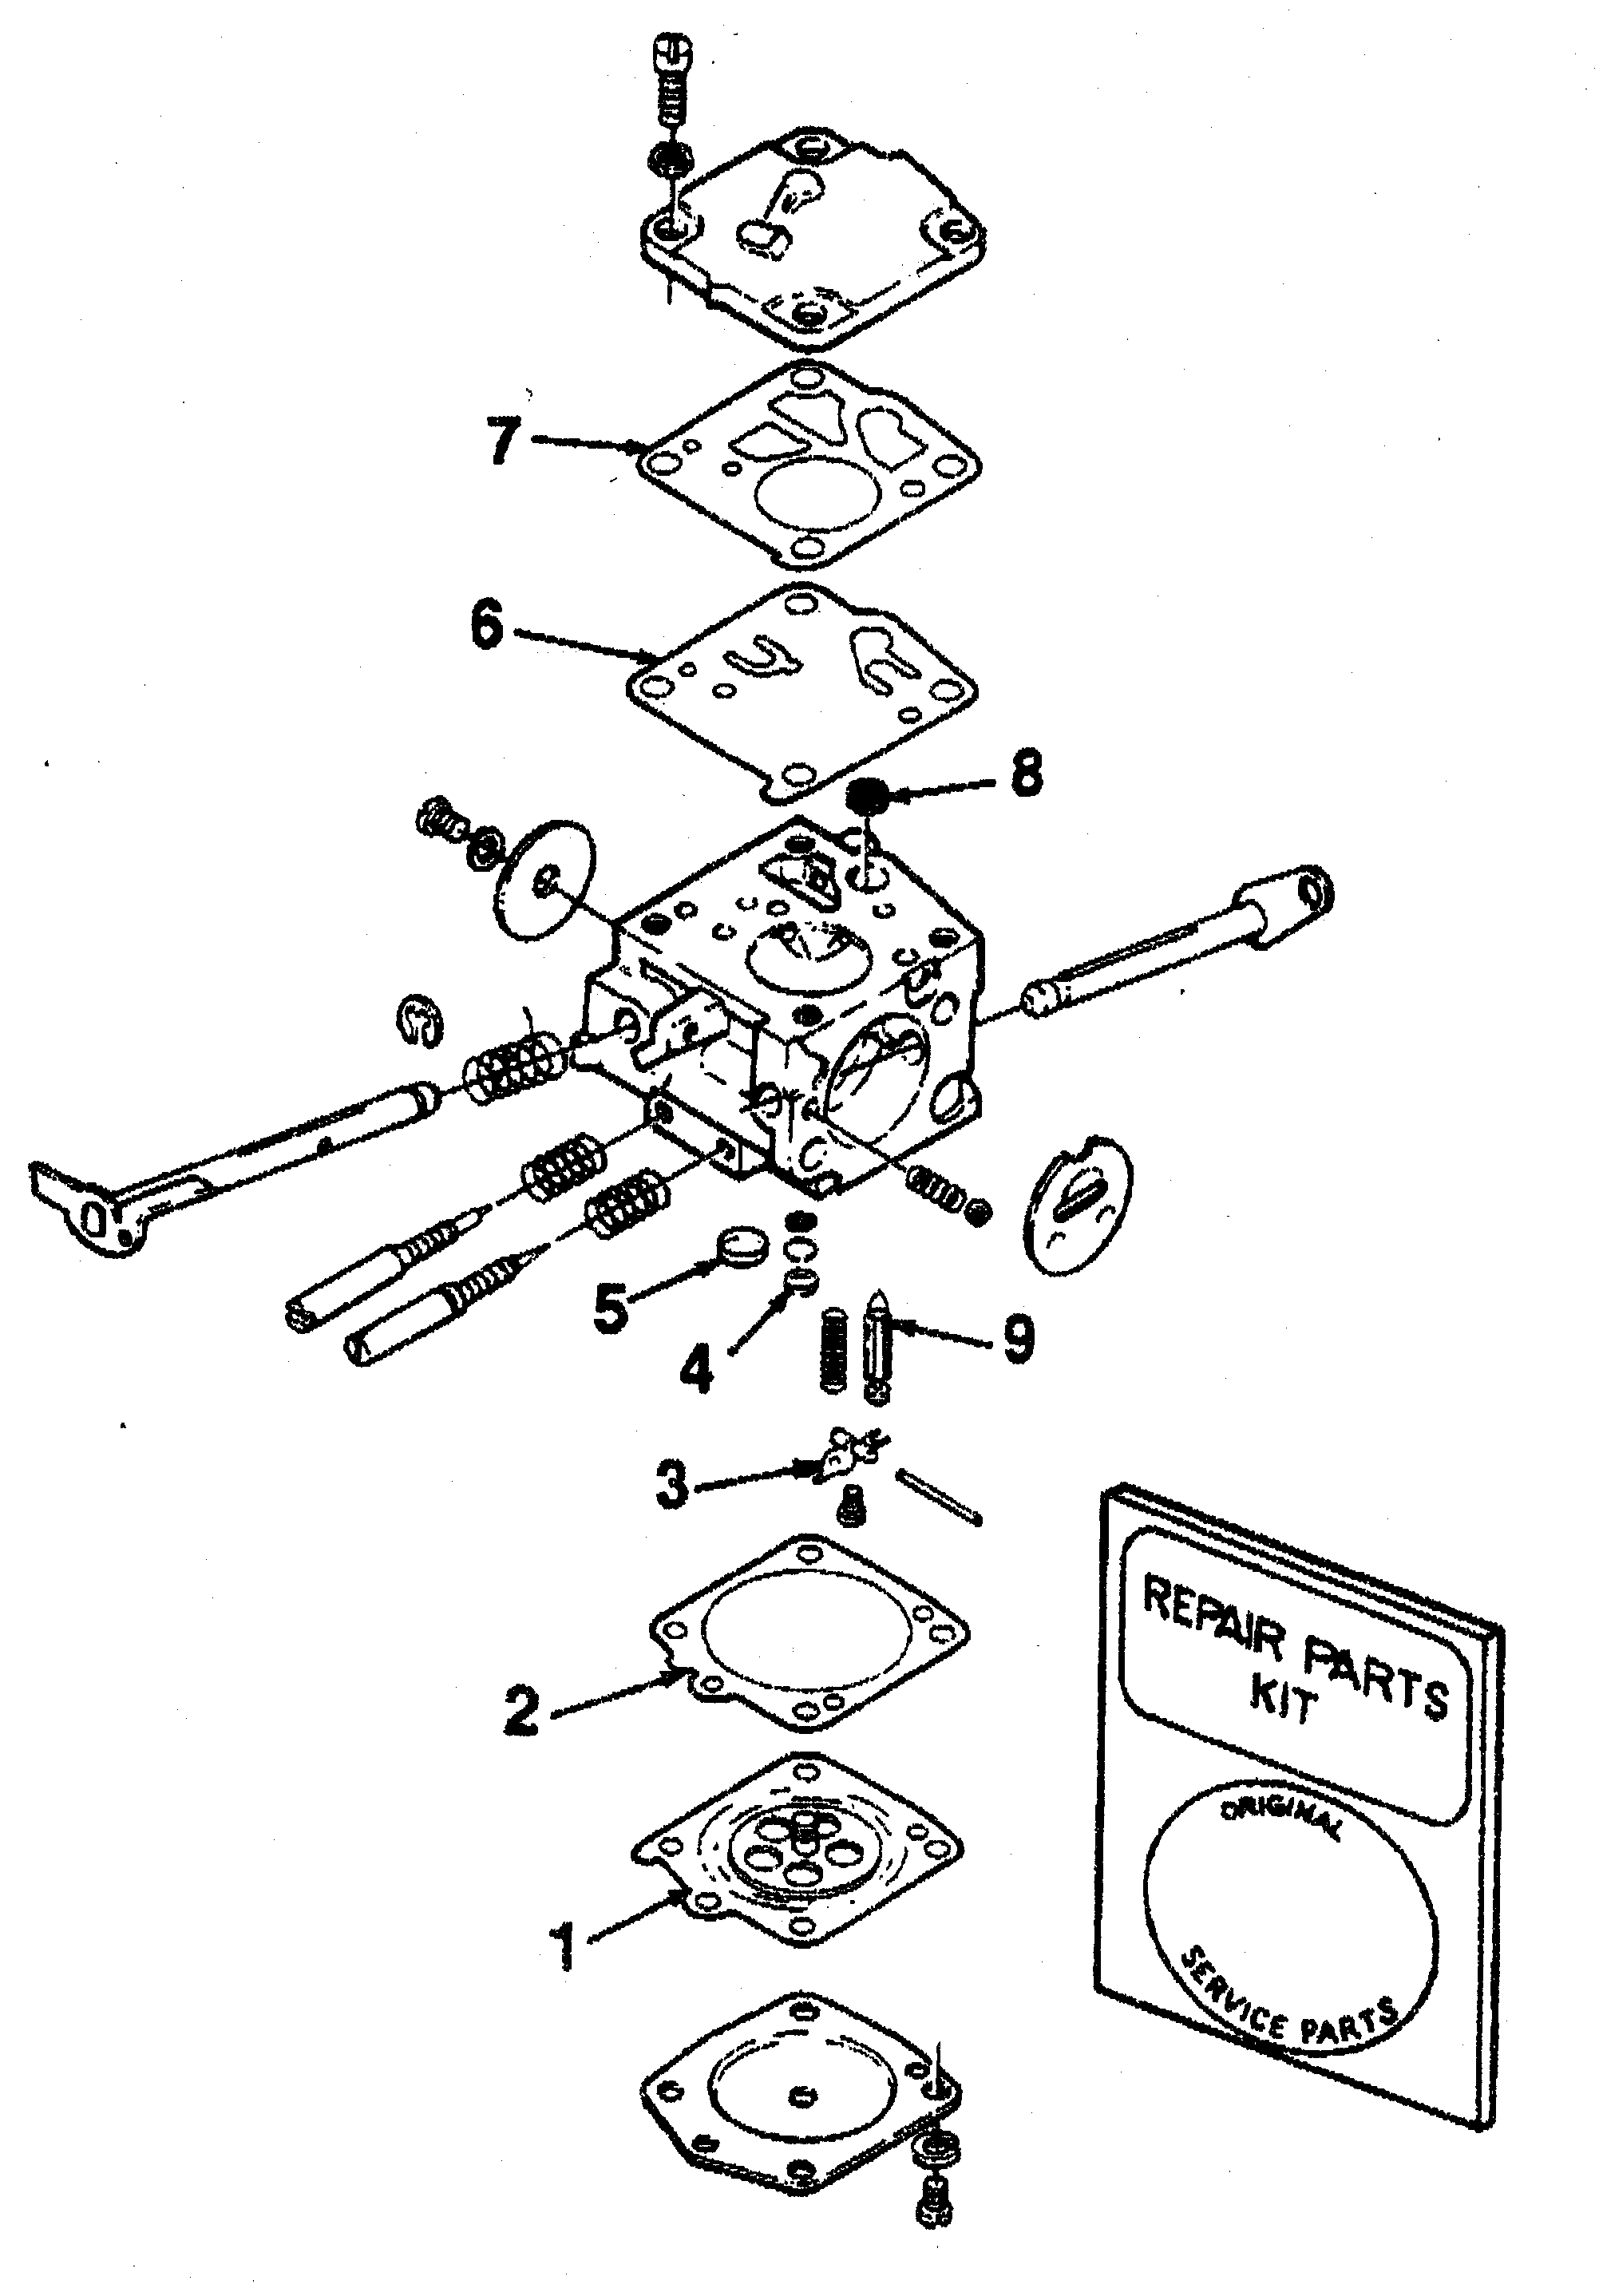 chainsaw fuel filter line installation tool